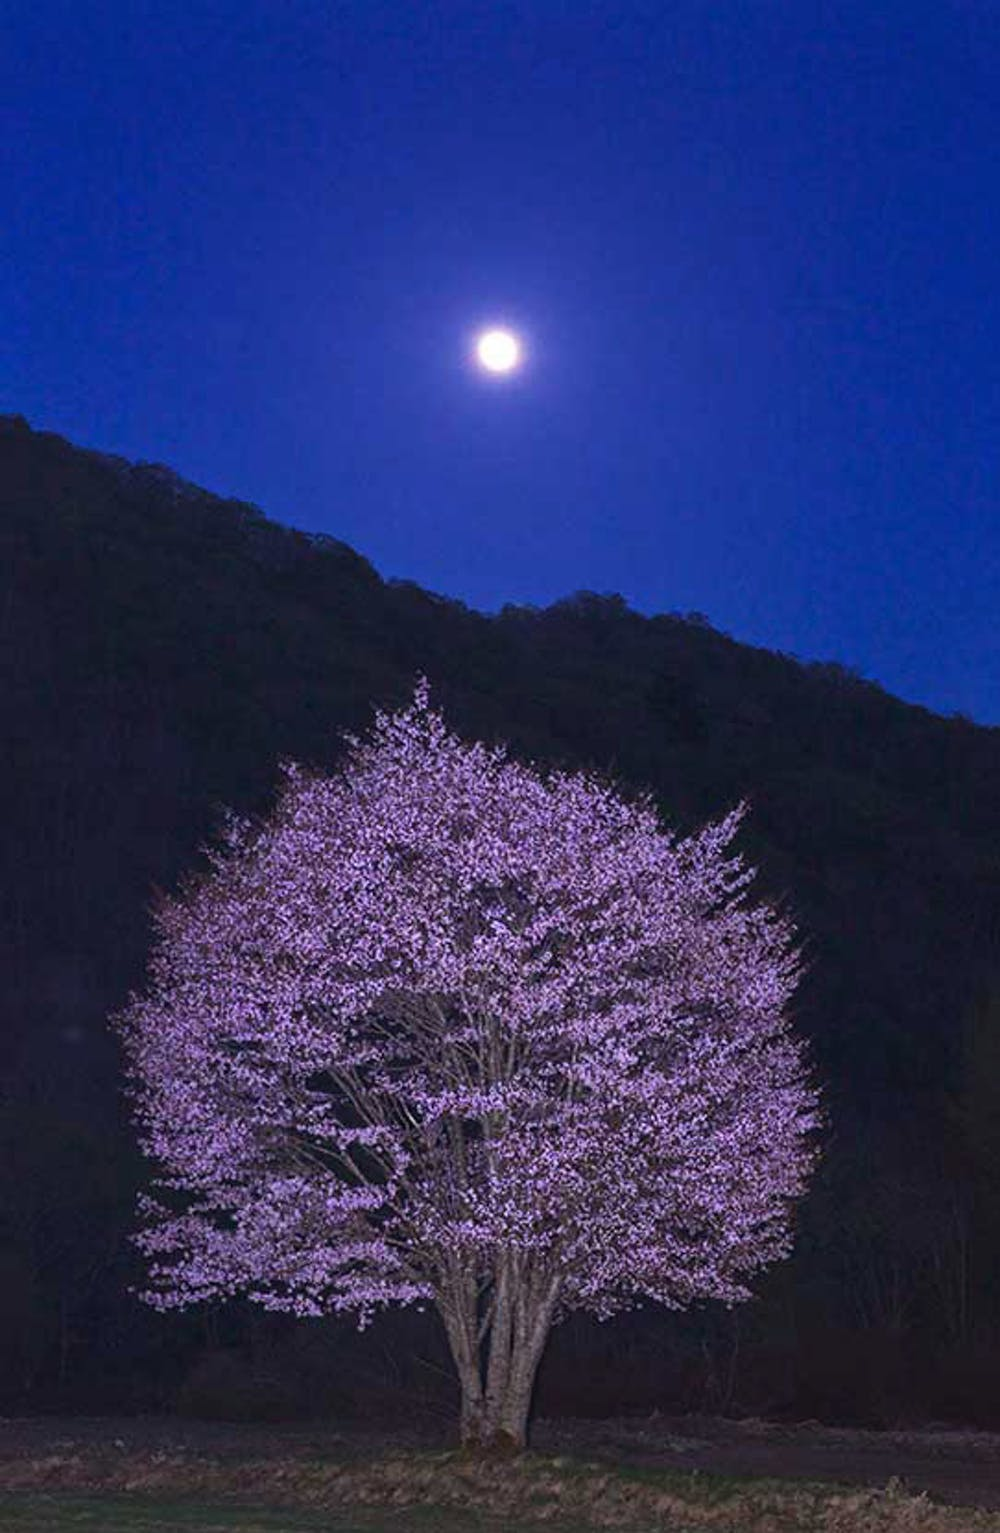 A photo selected for the NHK Fukushima cherry-tree competition. Photo credit: NHK/MCJP